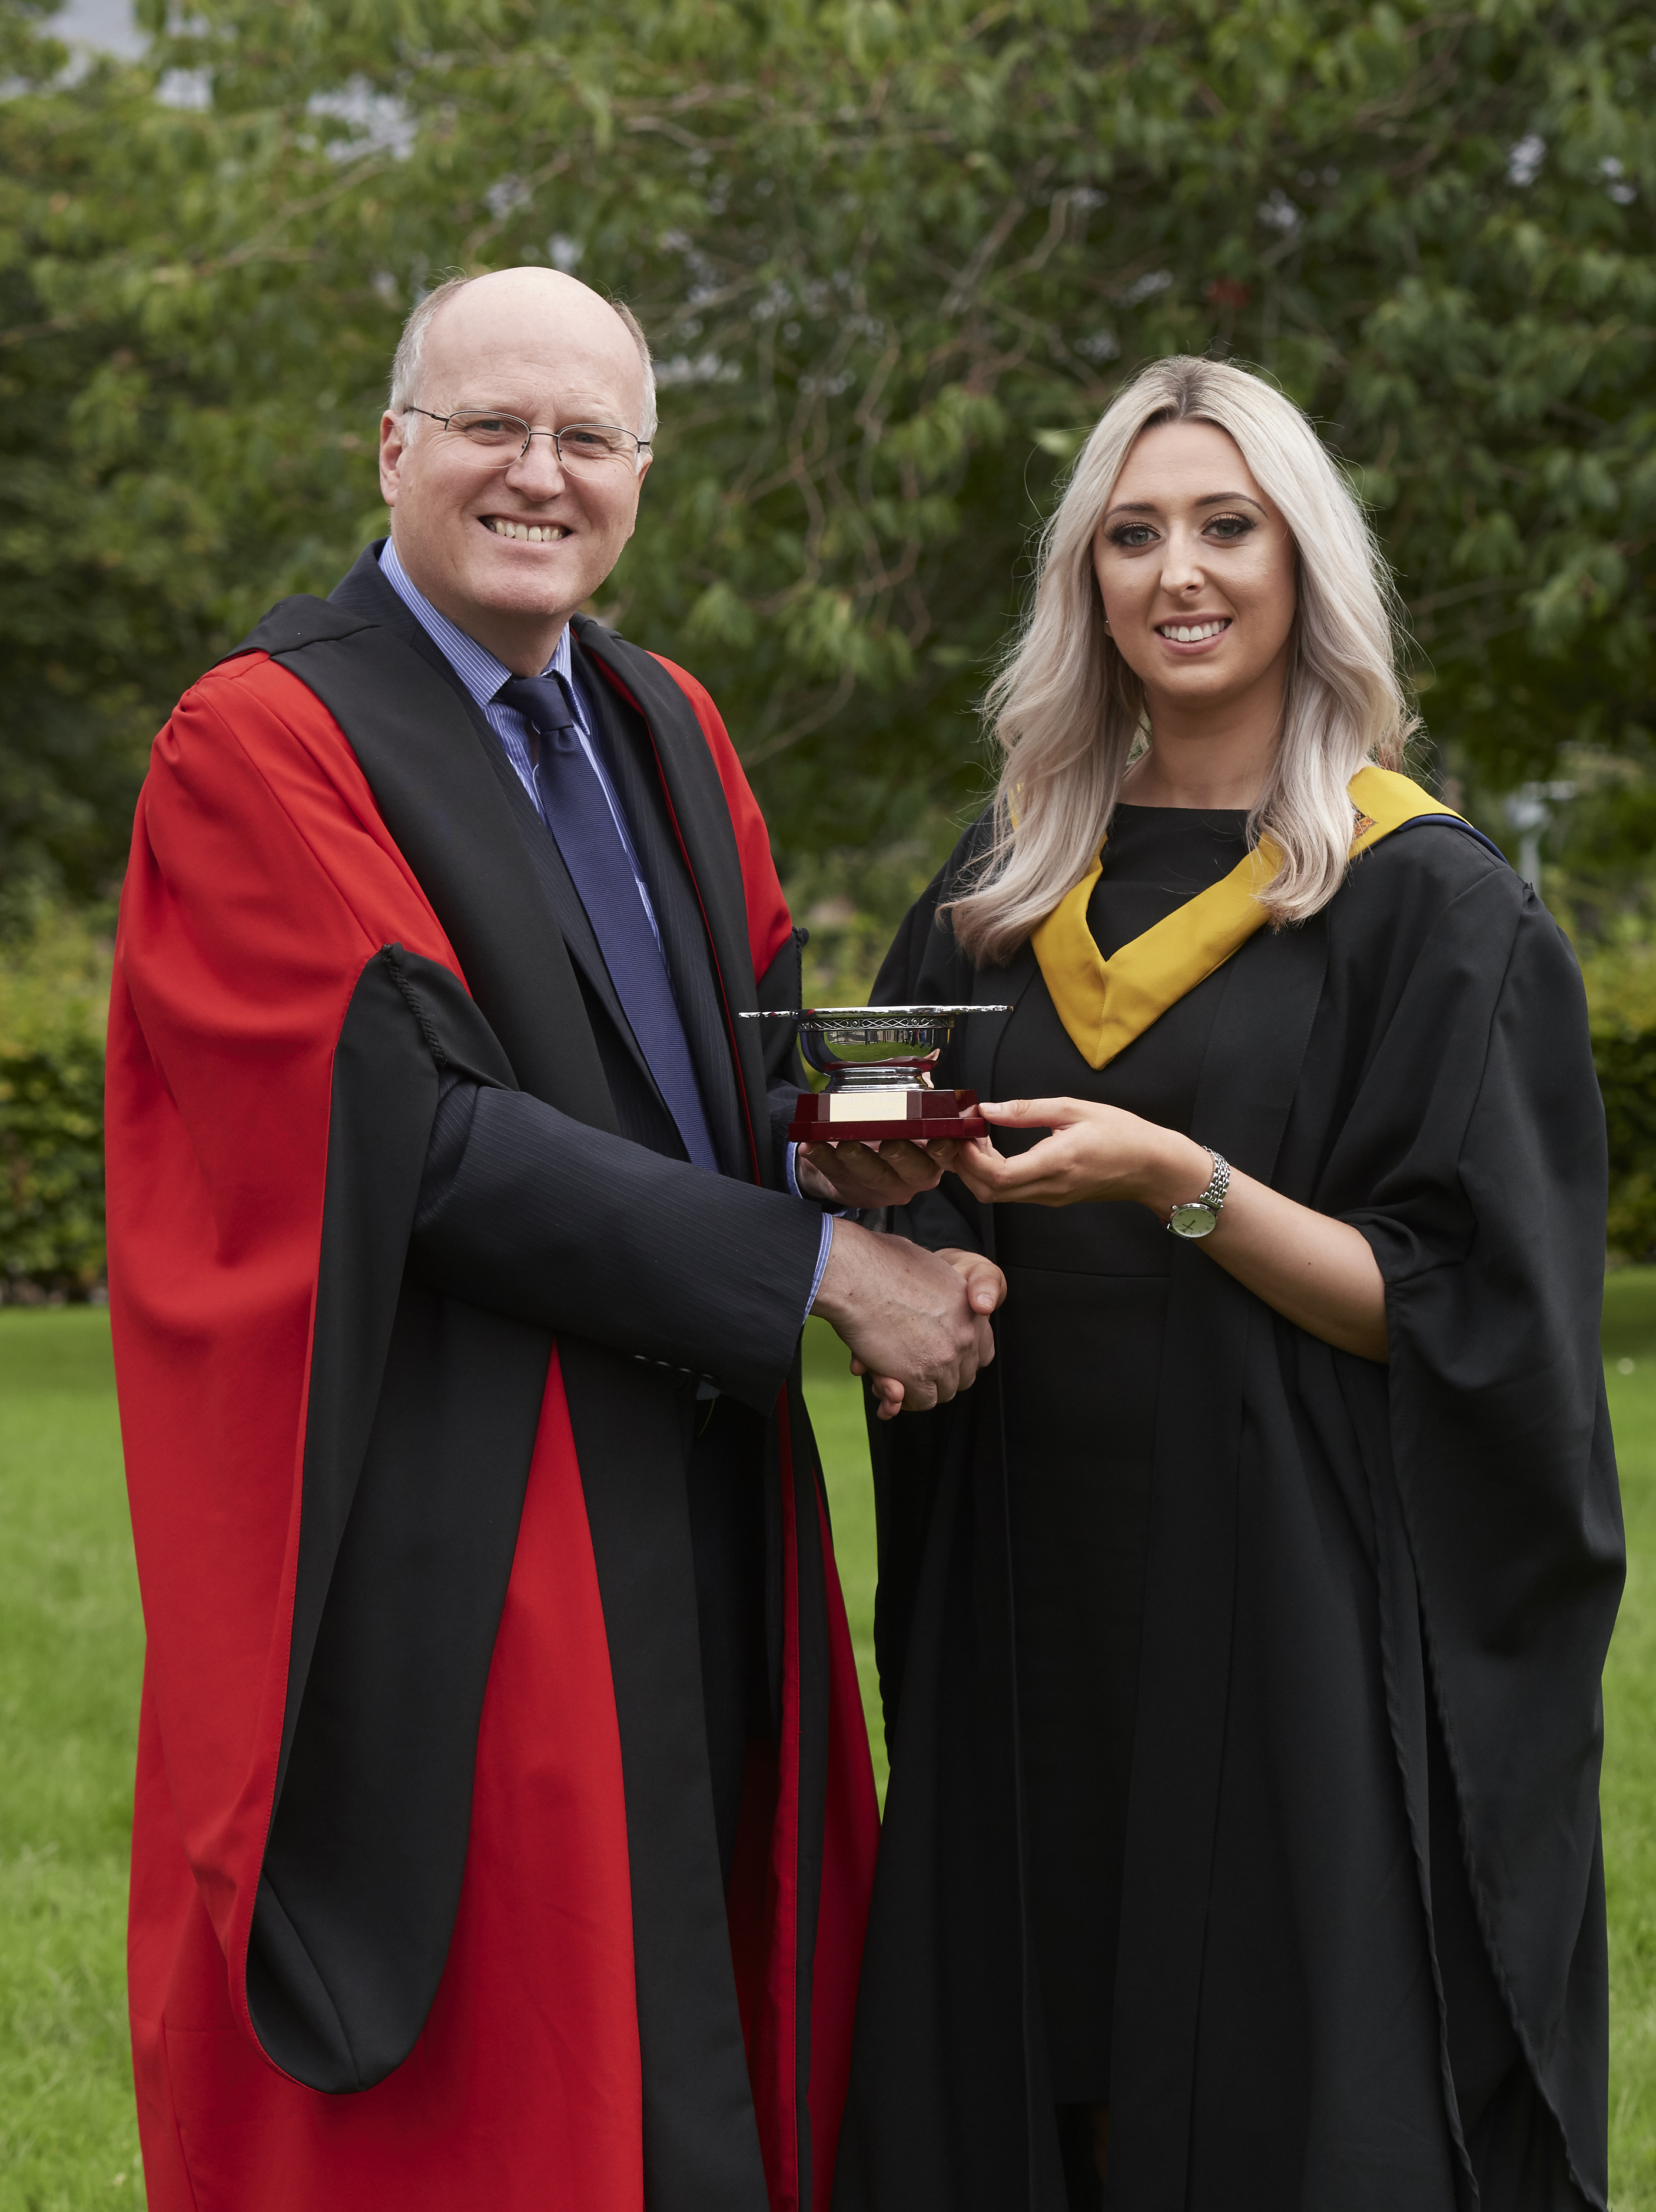 Kingussie student presented with care award